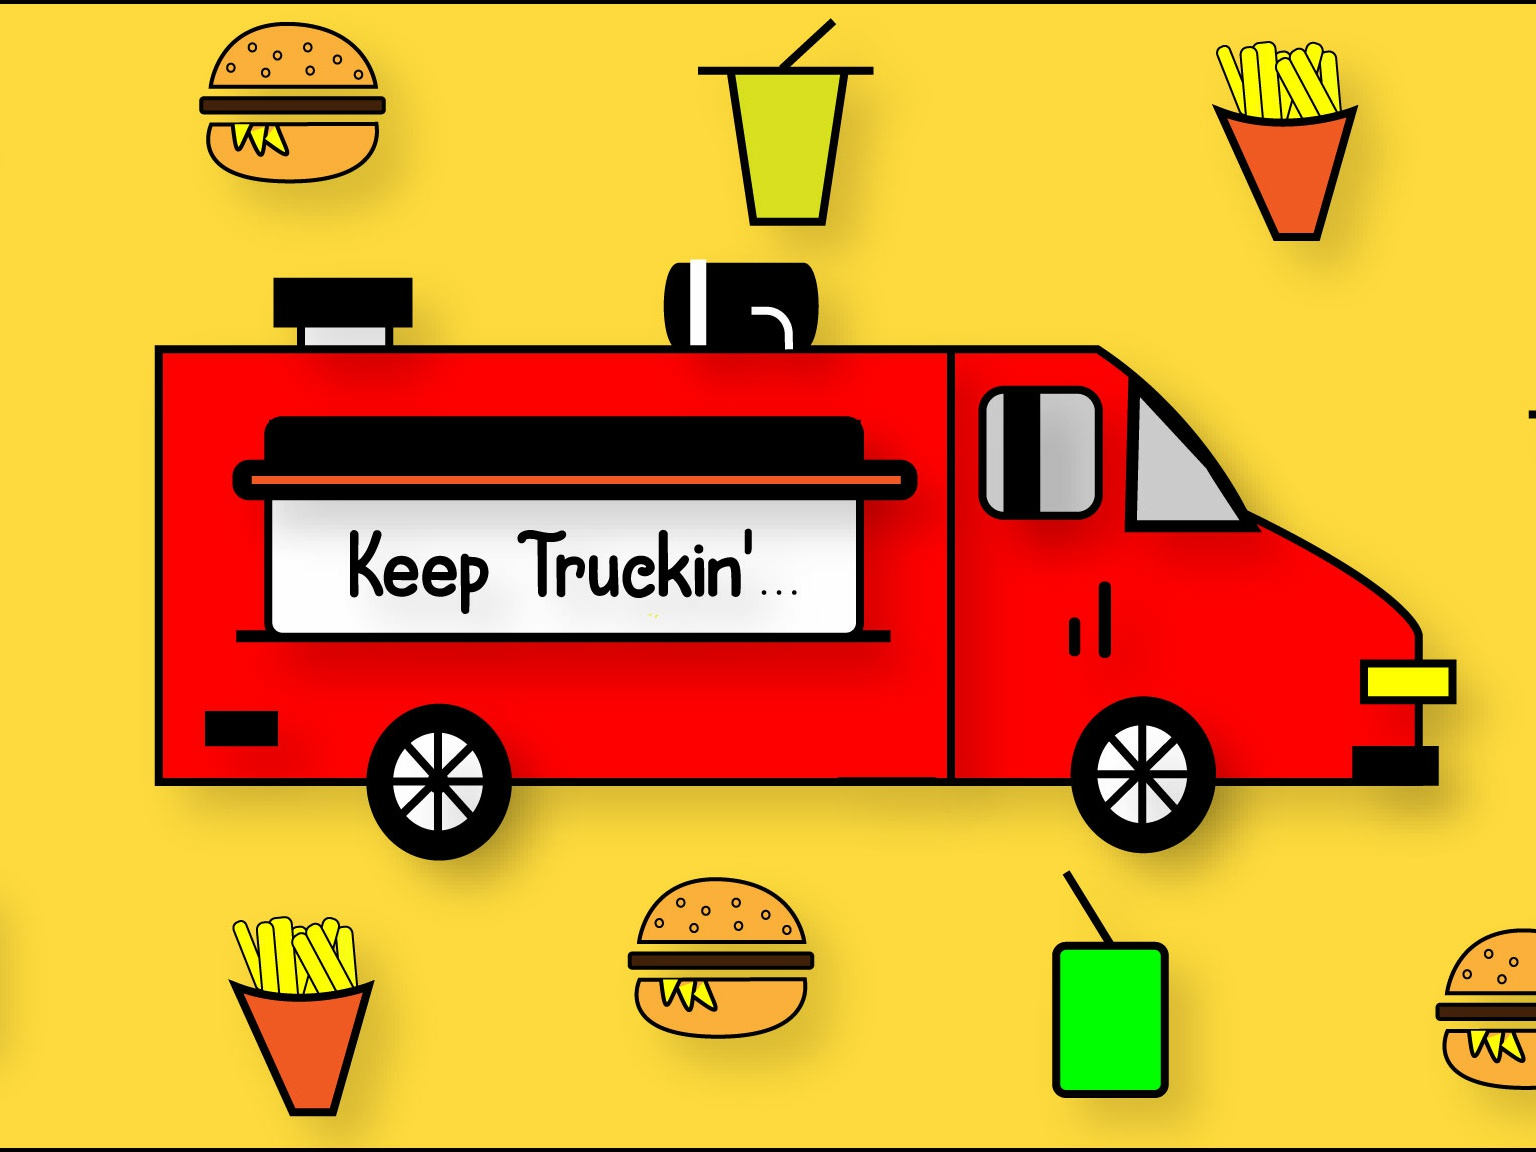 Keep Truckin... hanoded font keep truckin food truck drink fries food burger drop shadow logo portfolio design creative illustration adobe